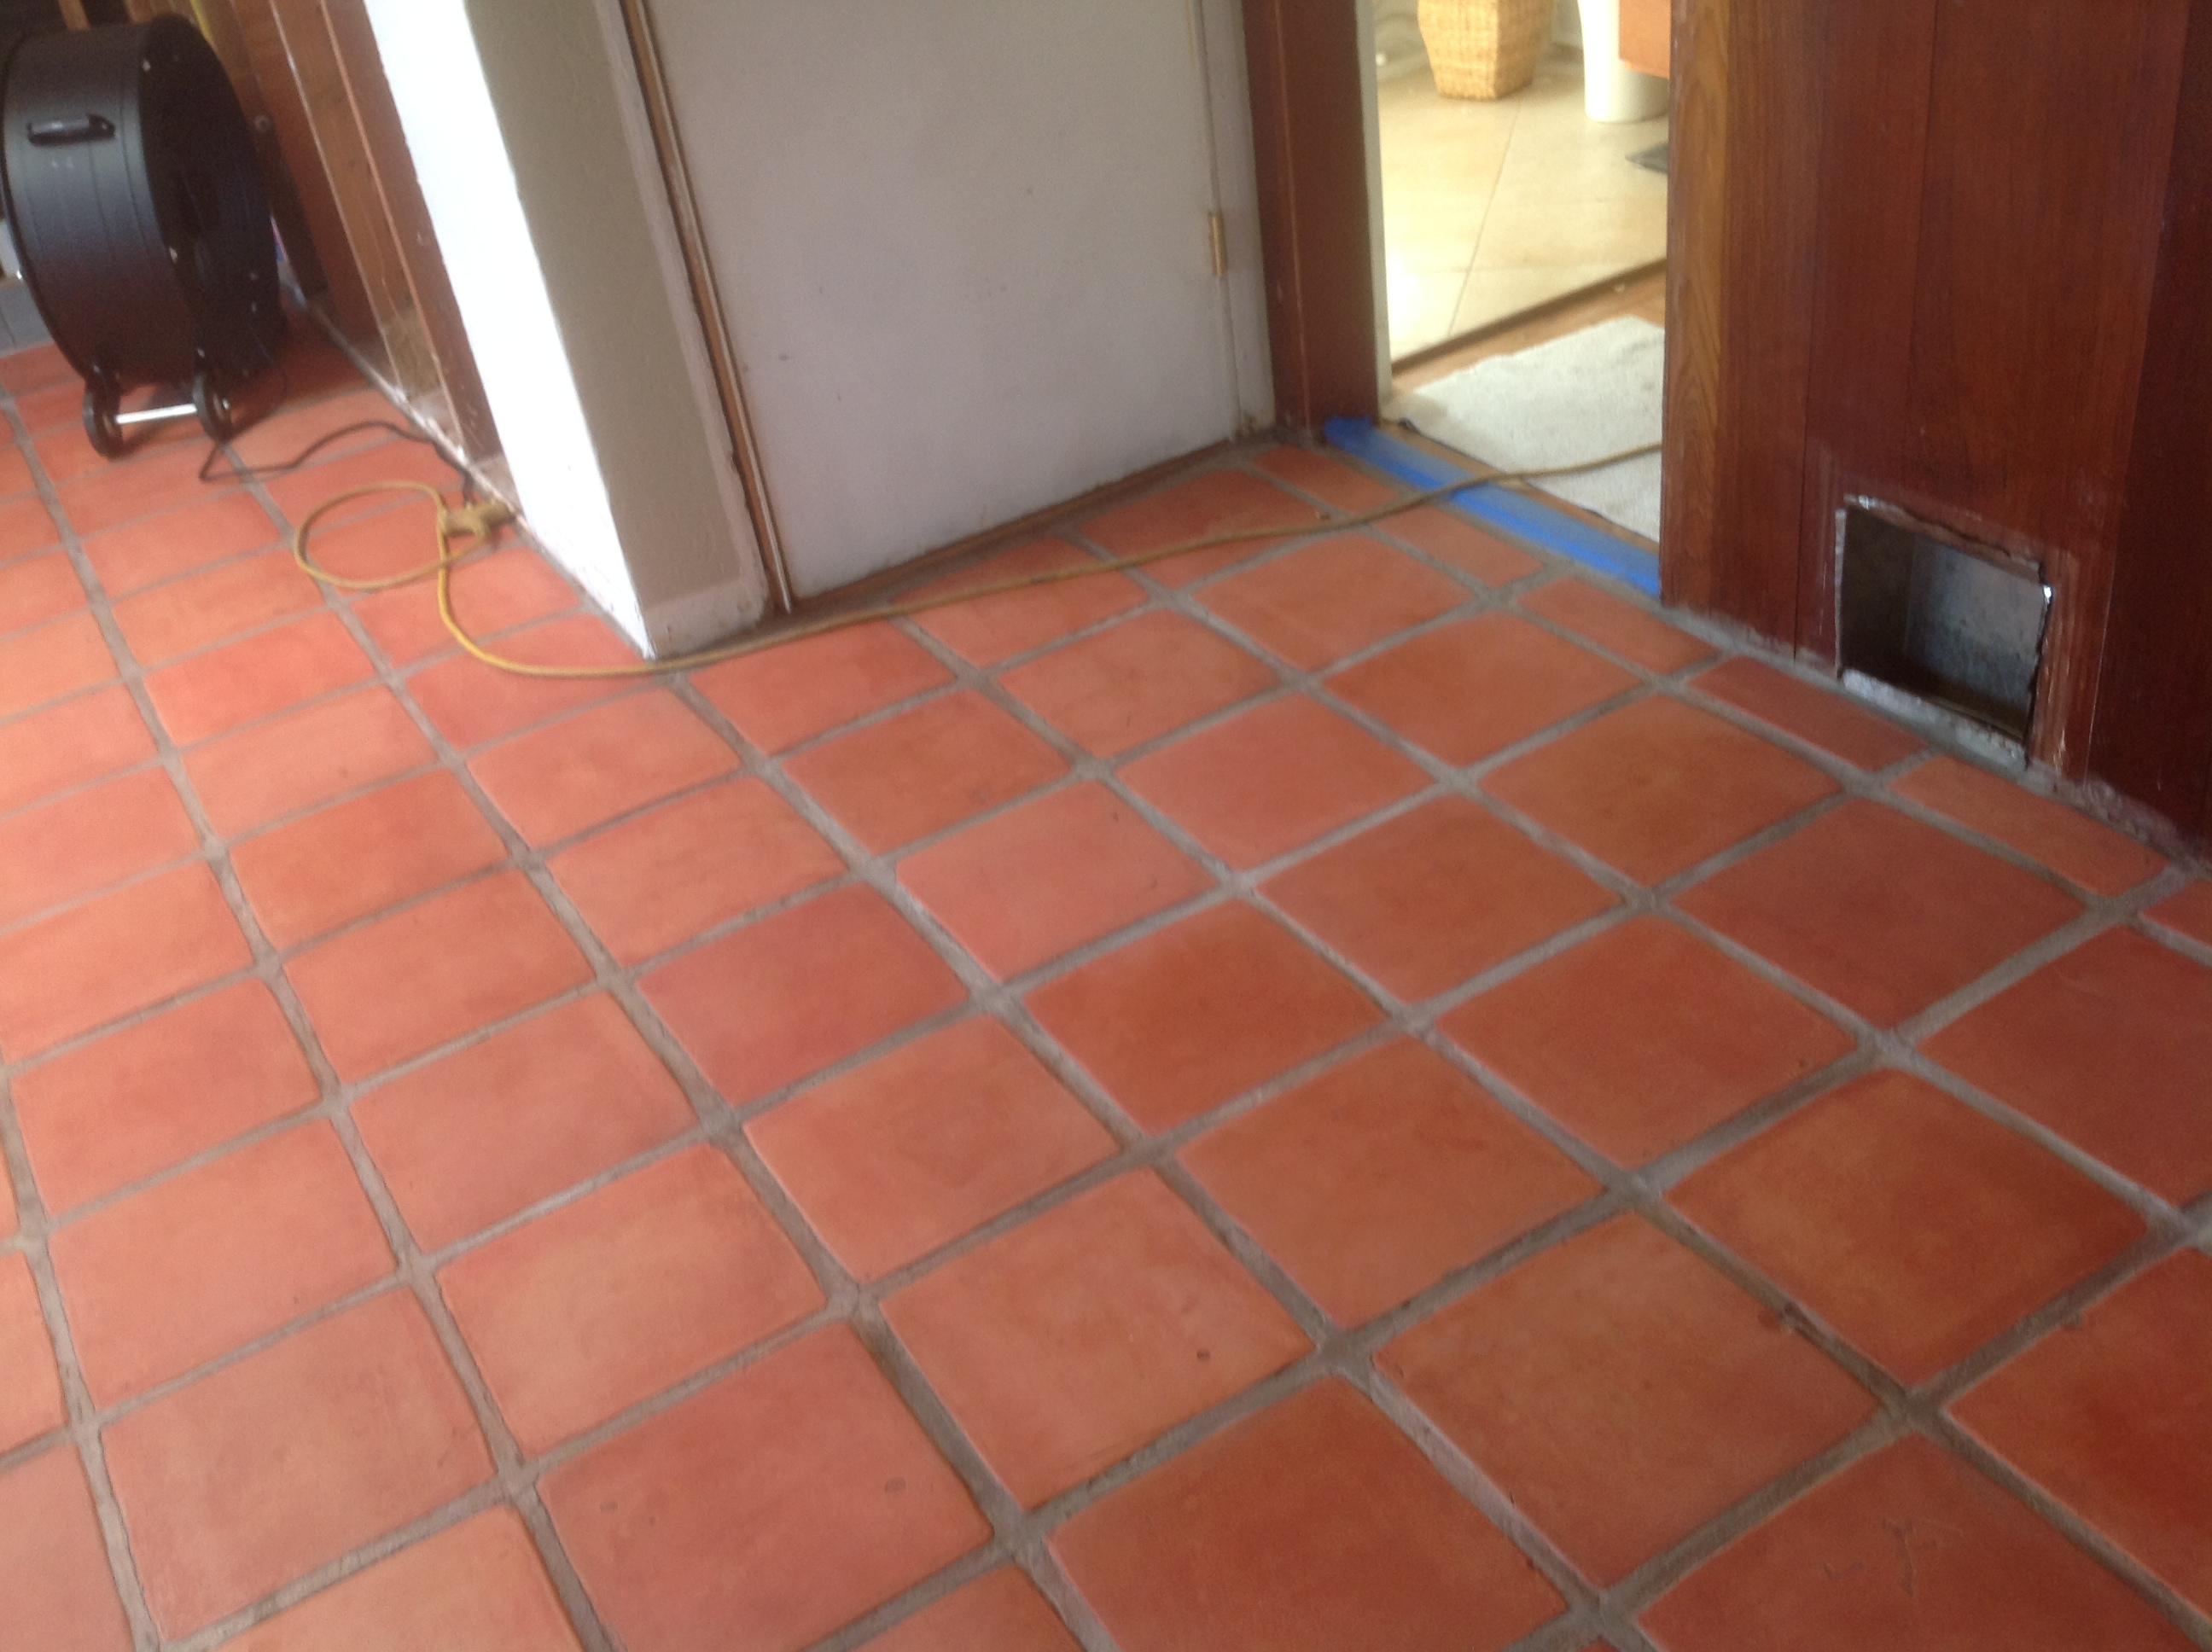 Staining and sealing saltillo tile the correct way california stained raw saltillo tile dailygadgetfo Choice Image